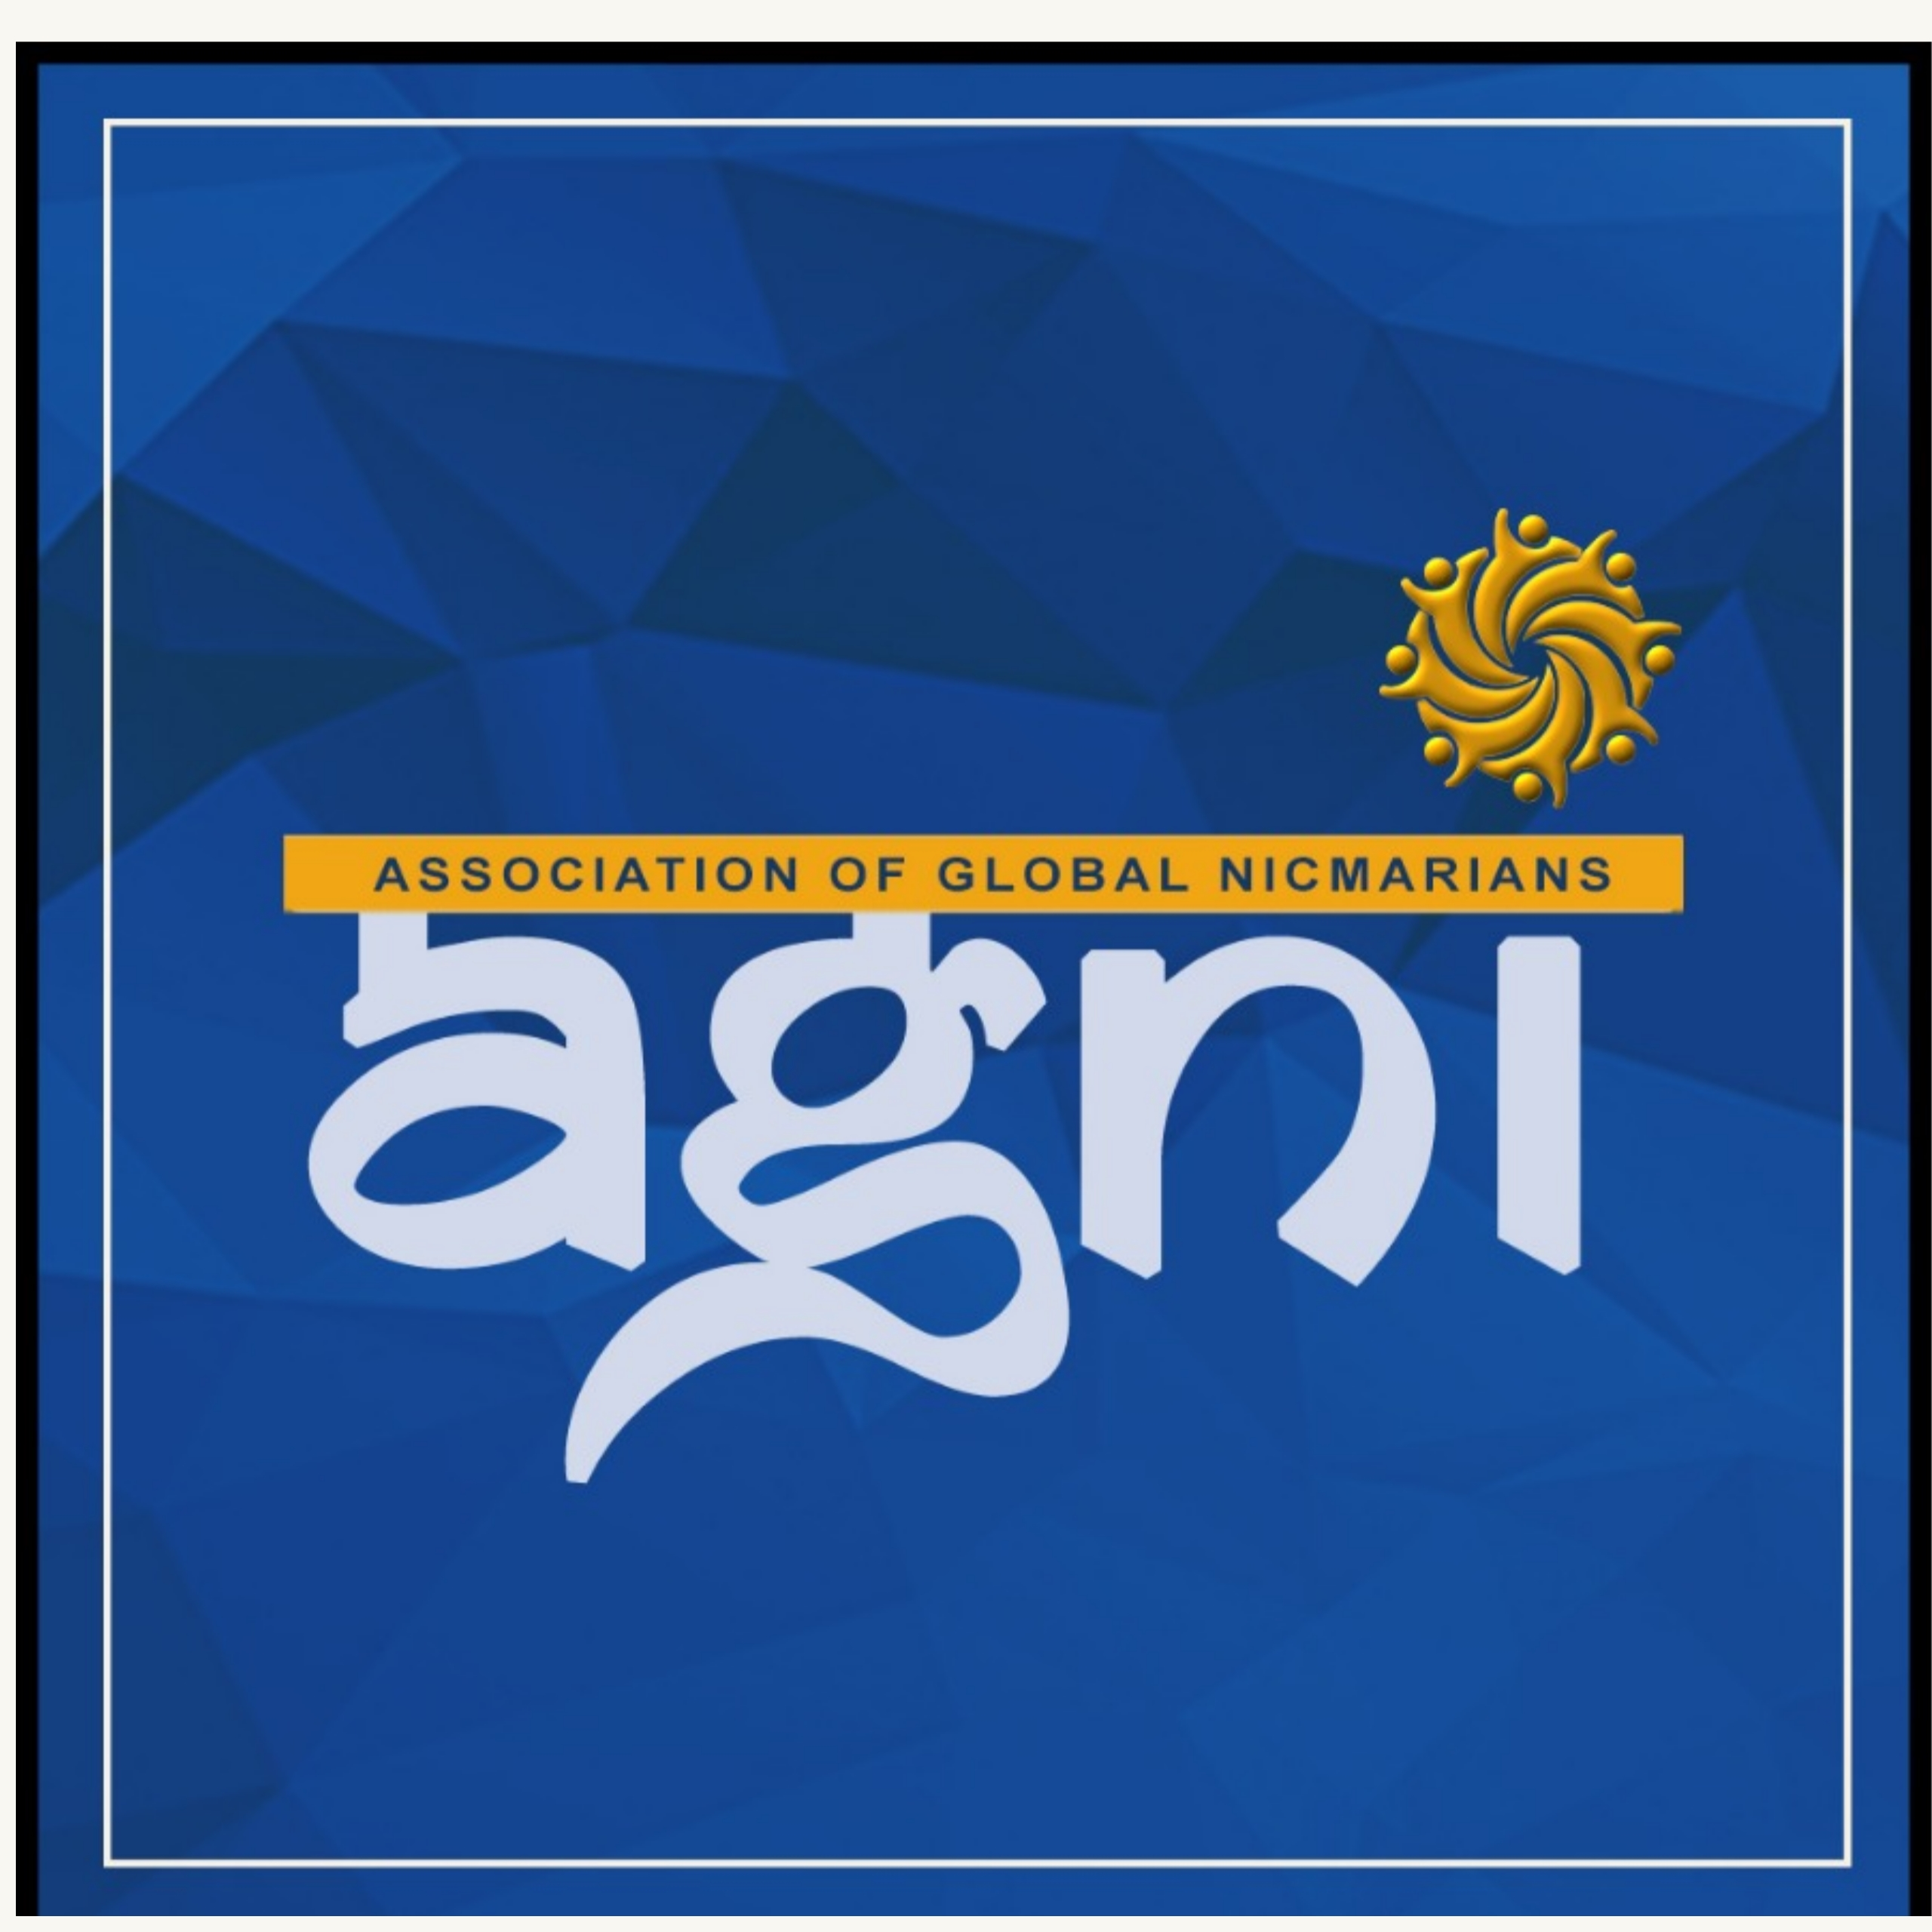 AGNI HOSTING CONSTRUCTION LEADERSHIP CONCLAVE 1.0 IN MUMBAI